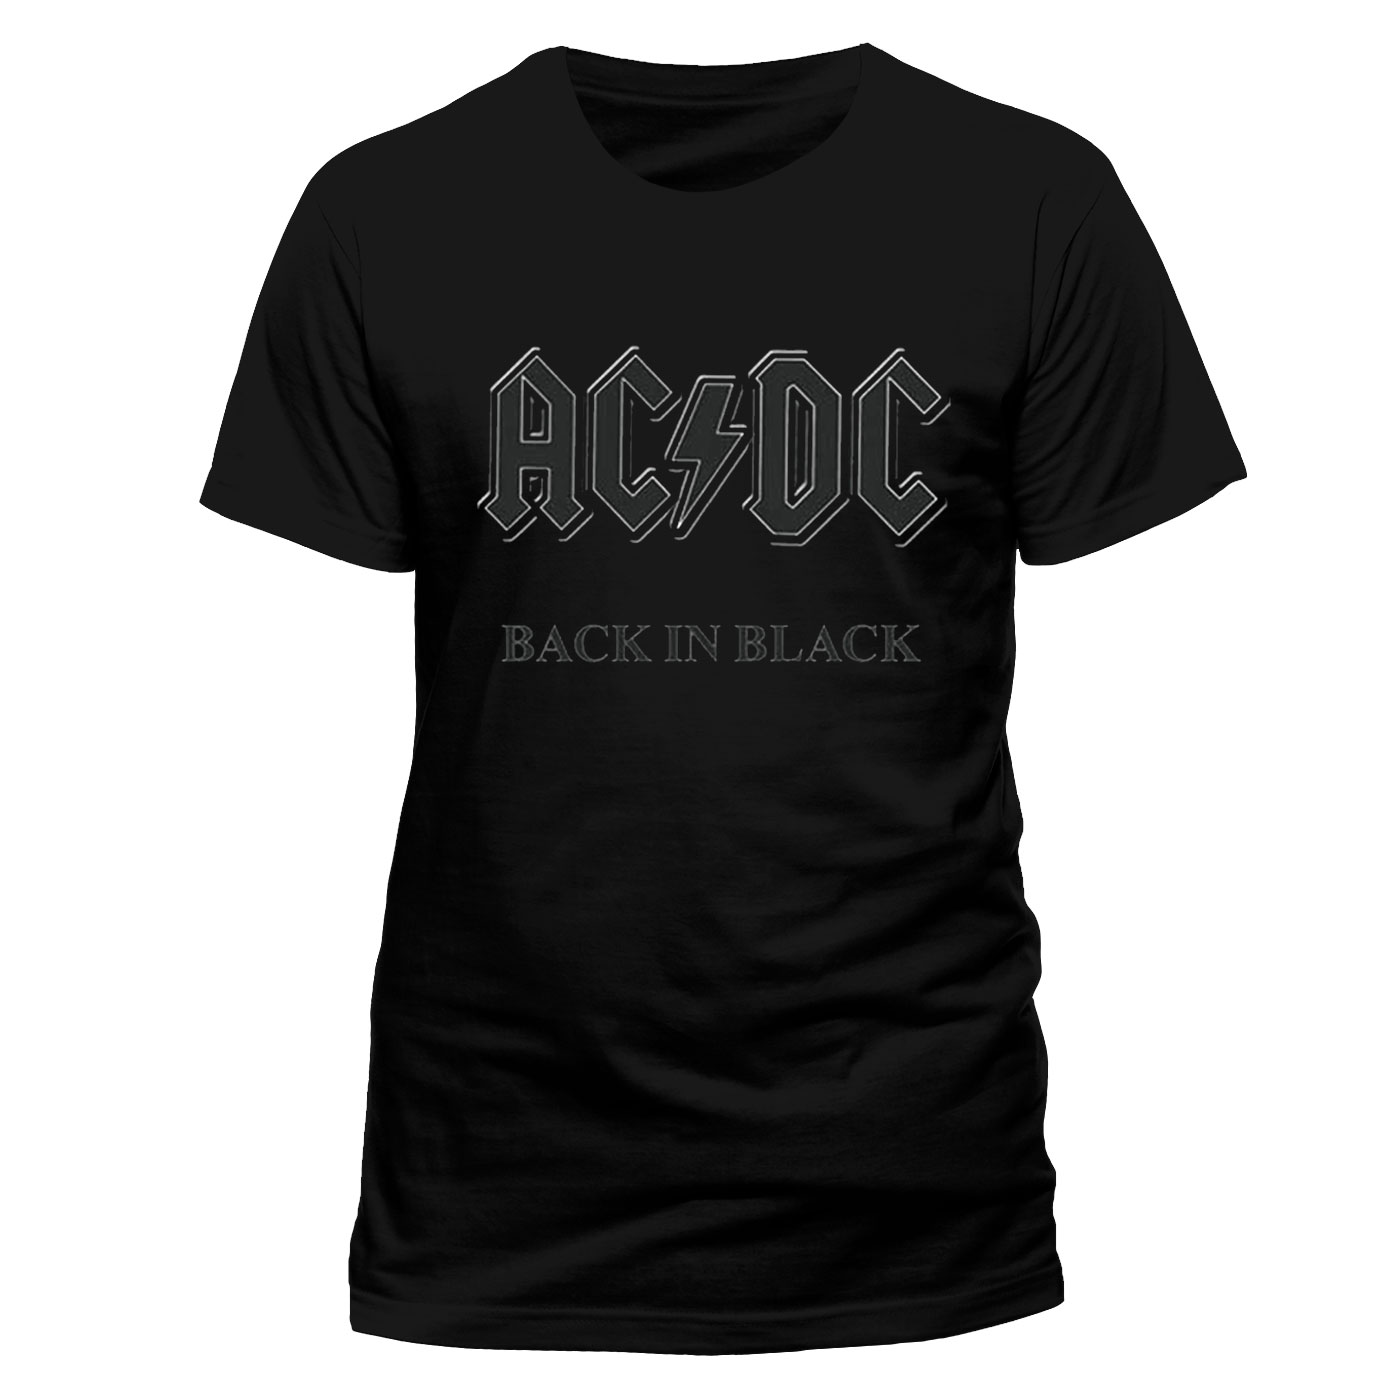 Back in black t shirt - Image Is Loading Ac Dc 034 Back In Black 034 Official